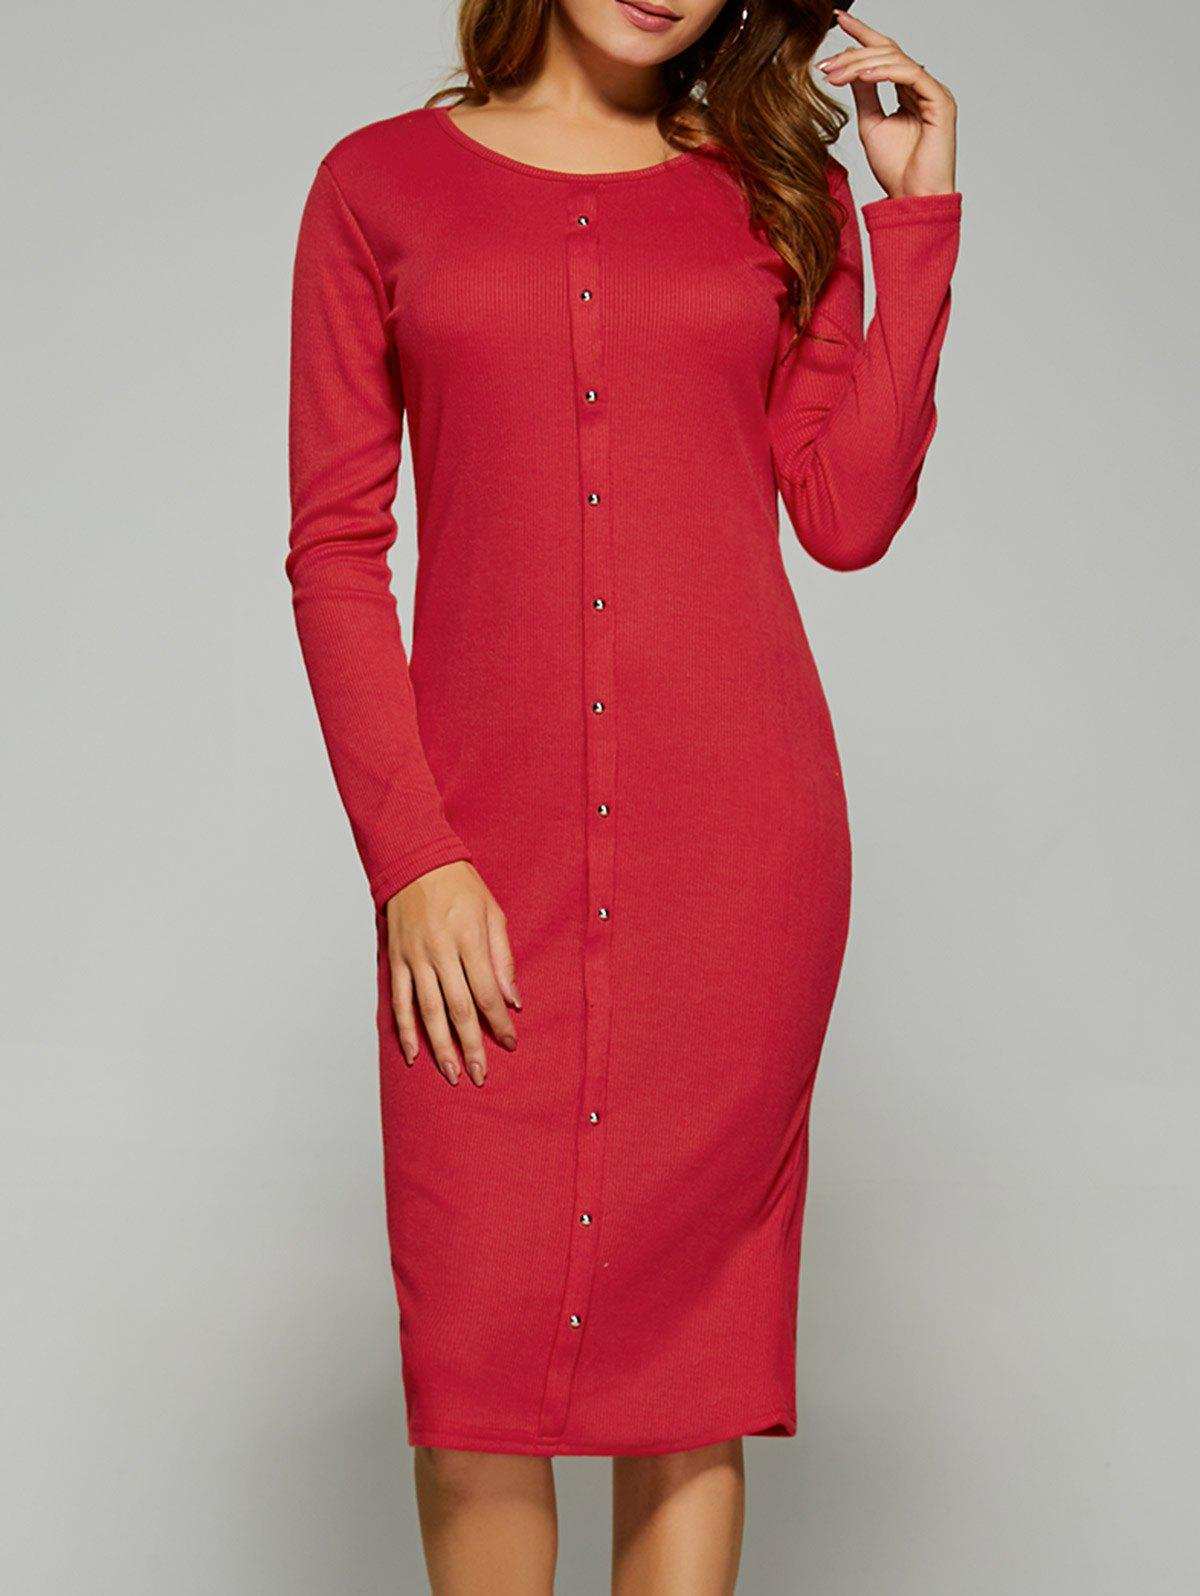 Long Sleeve Button Up Knit Sheath Dress - RED L